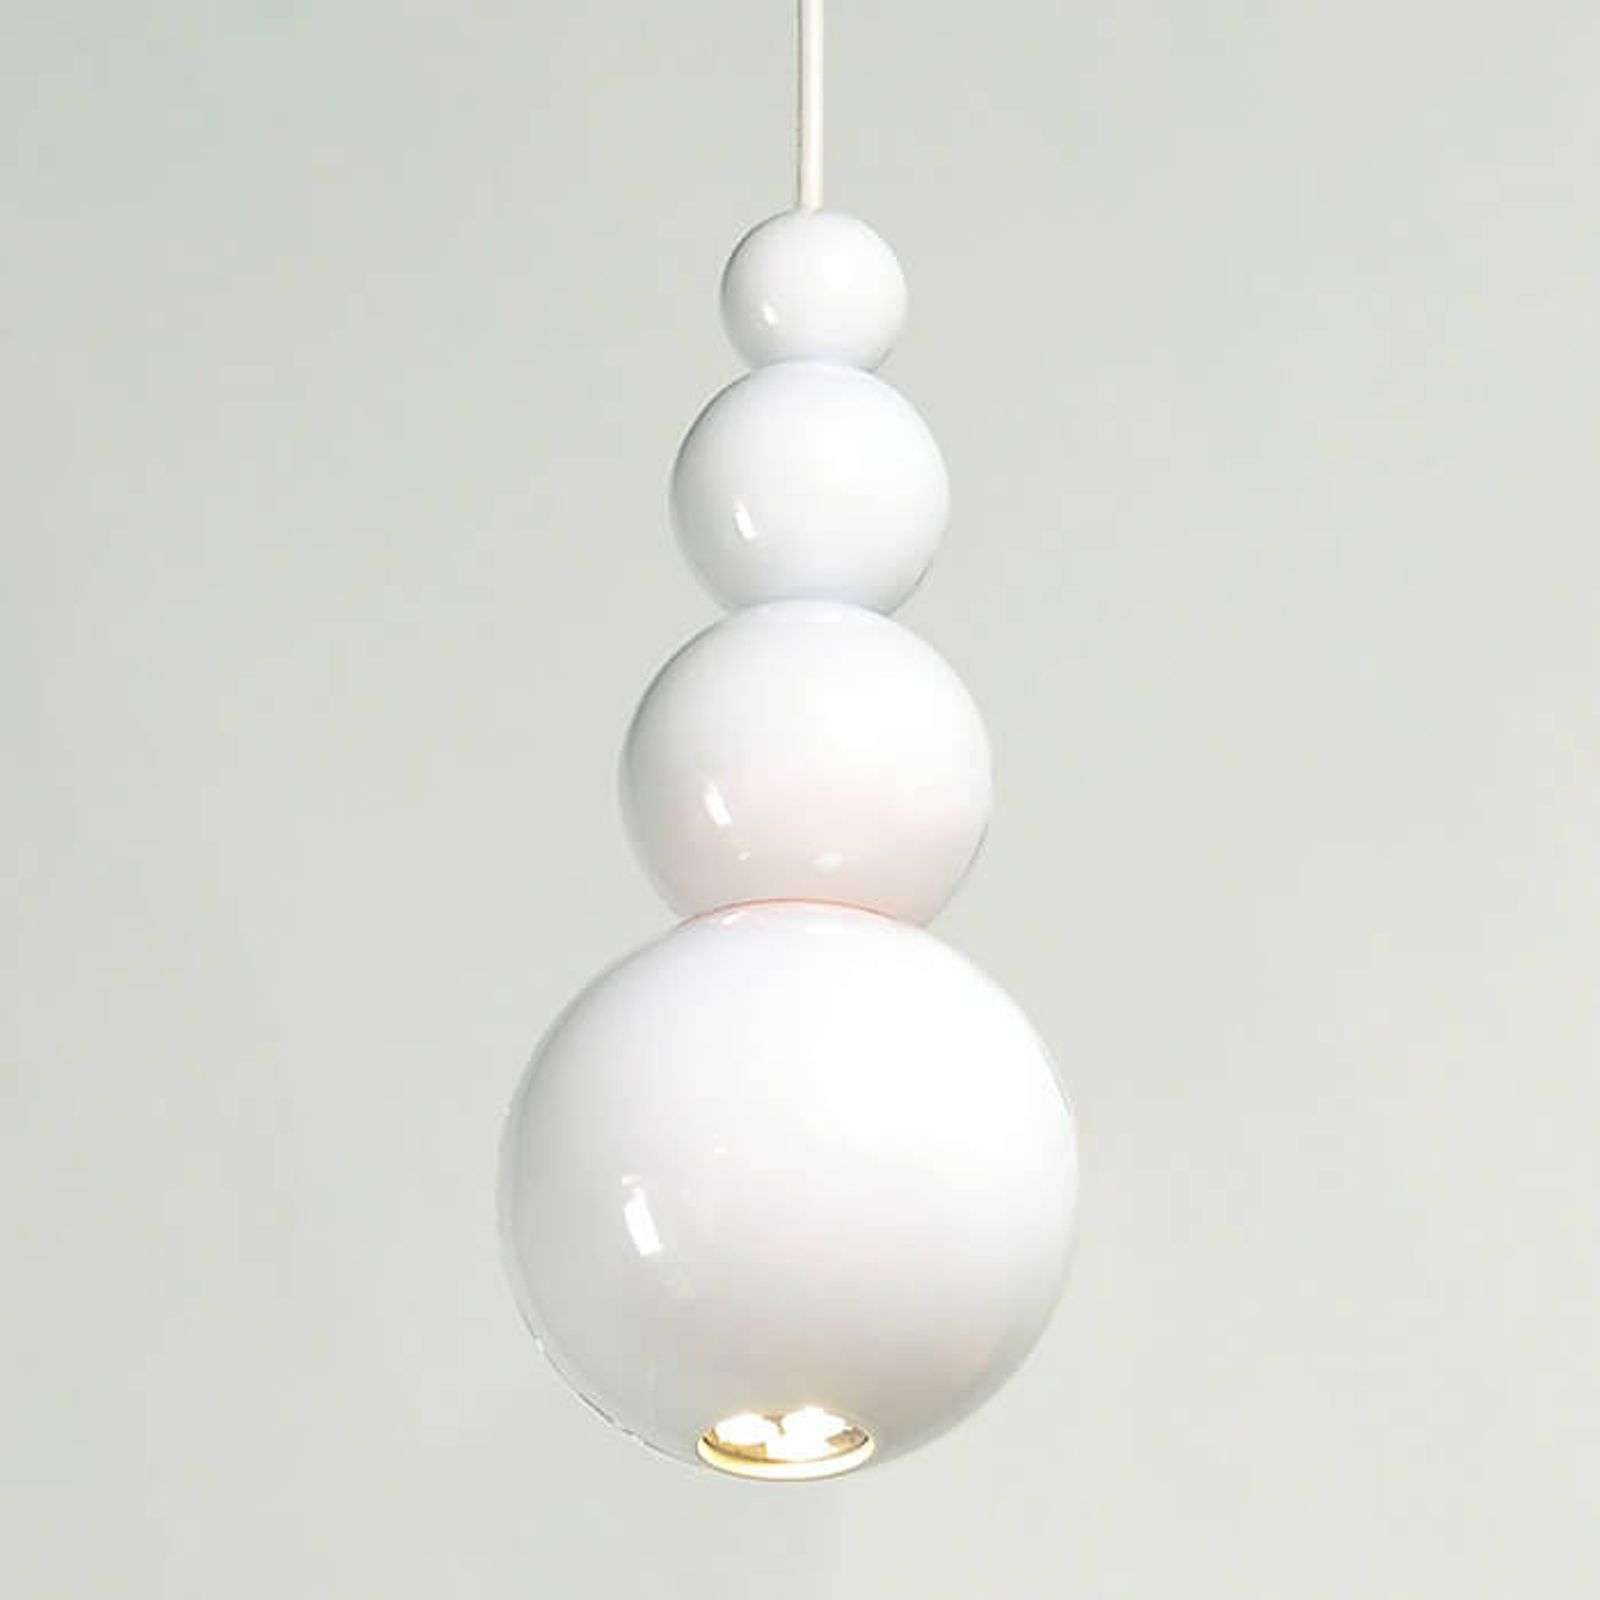 Innermost Bubble - suspension en blanc